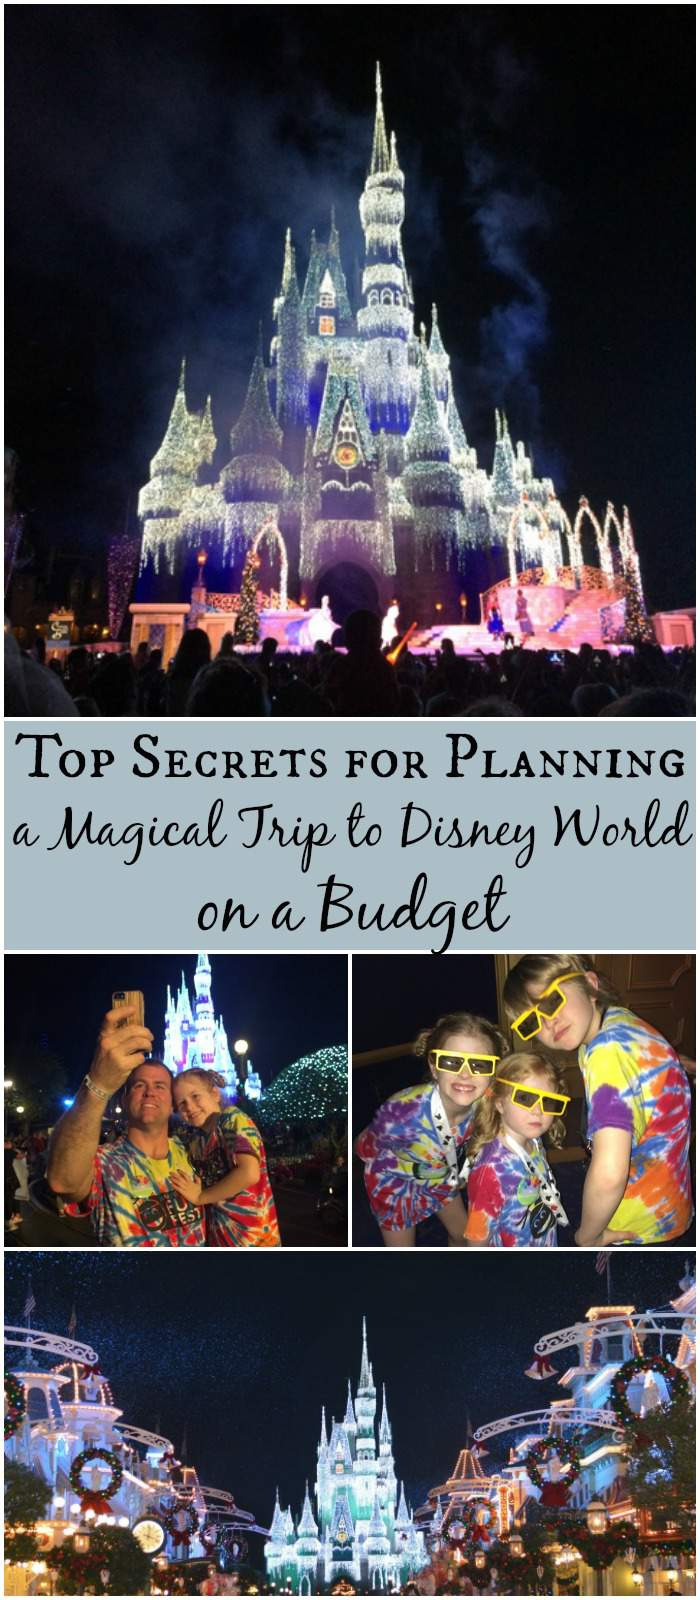 Going to Disney World can be a dream come true for large and small budgets alike. If you're planning a trip to Disney World on a budget, these 11 tips will help you have the most m magical family vacation without breaking the bank.